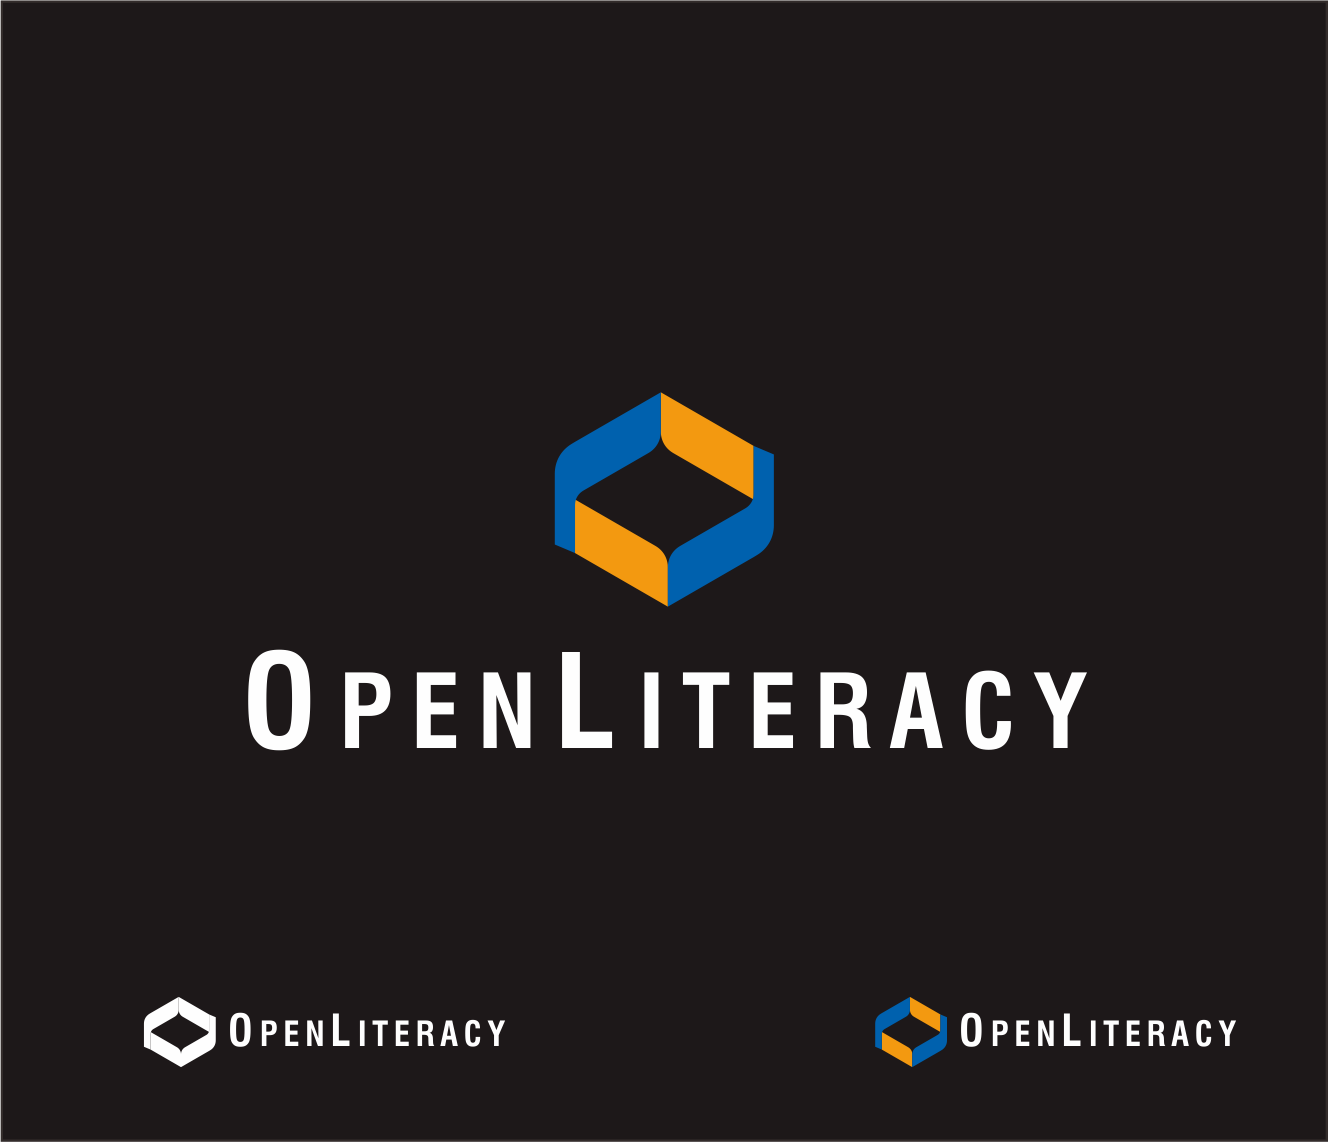 Logo Design by Armada Jamaluddin - Entry No. 83 in the Logo Design Contest Inspiring Logo Design for OpenLiteracy.